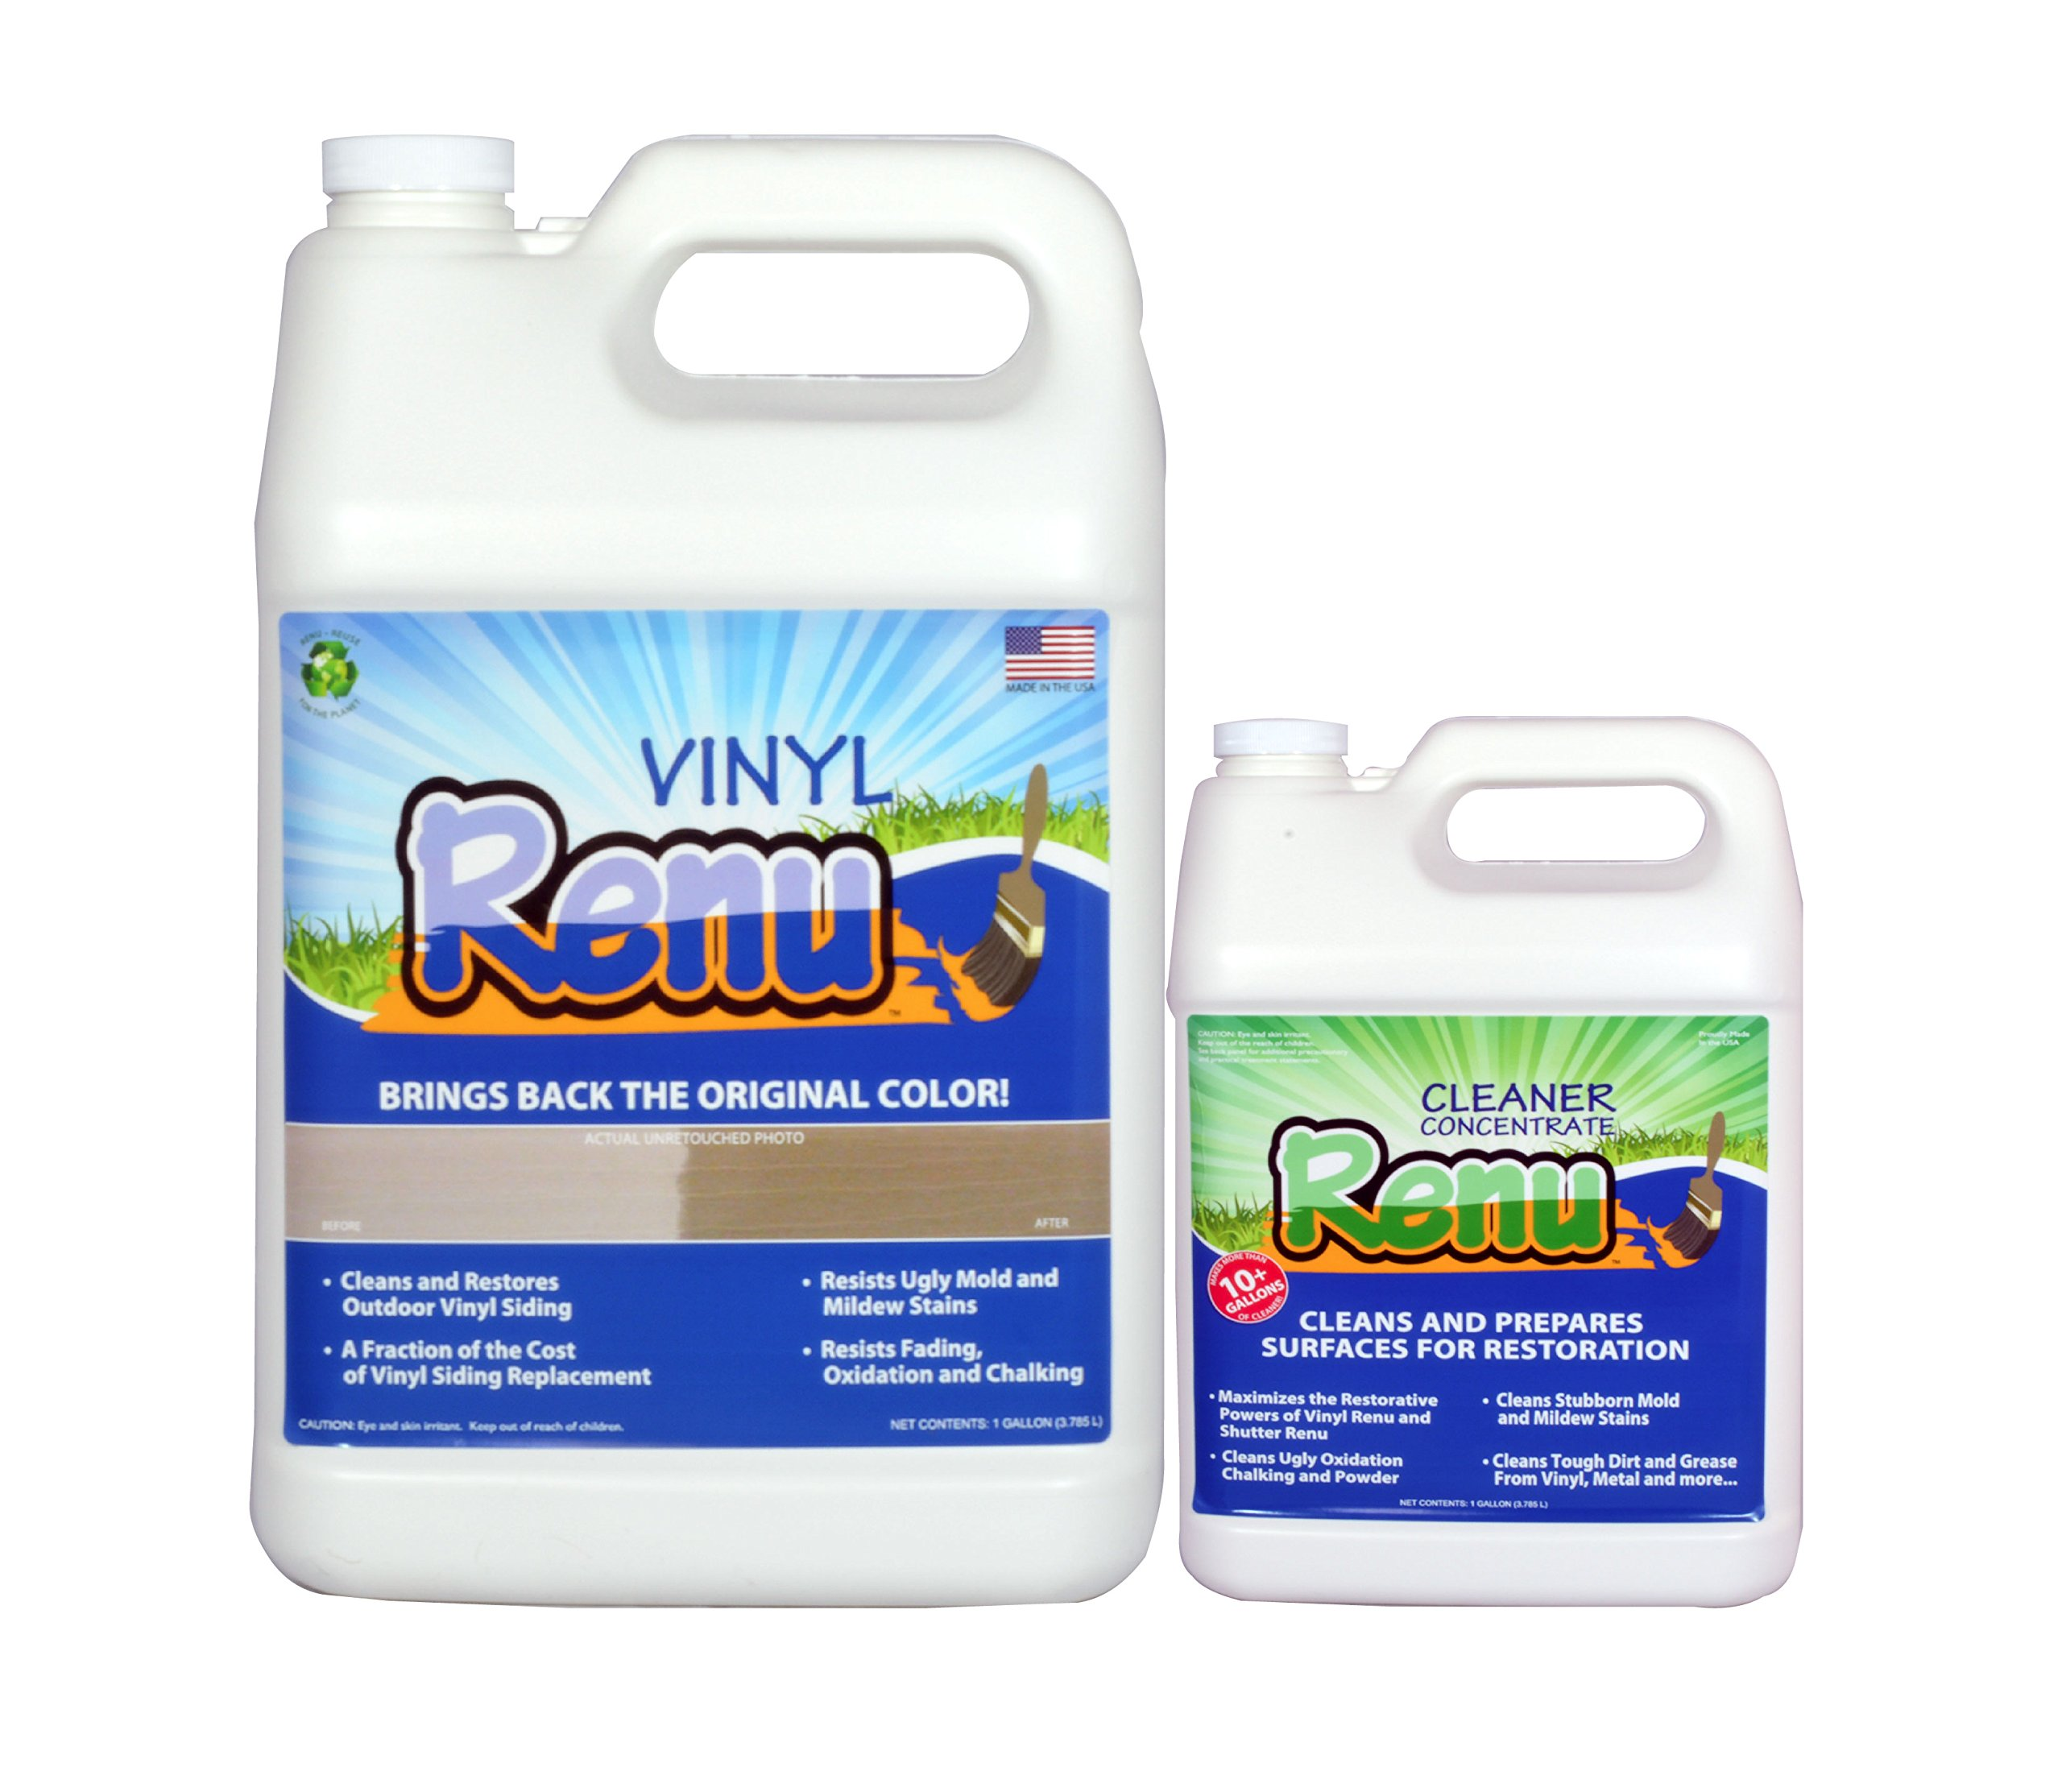 Vinyl Renu 1 Gallon Kit Will Restore Color And Shine To Faded Plastic, Metal And Painted Surfaces. It Is An Easy To Use Longer Lasting, No Mess Alternative To Paint. Apply Once Every 10 Years.